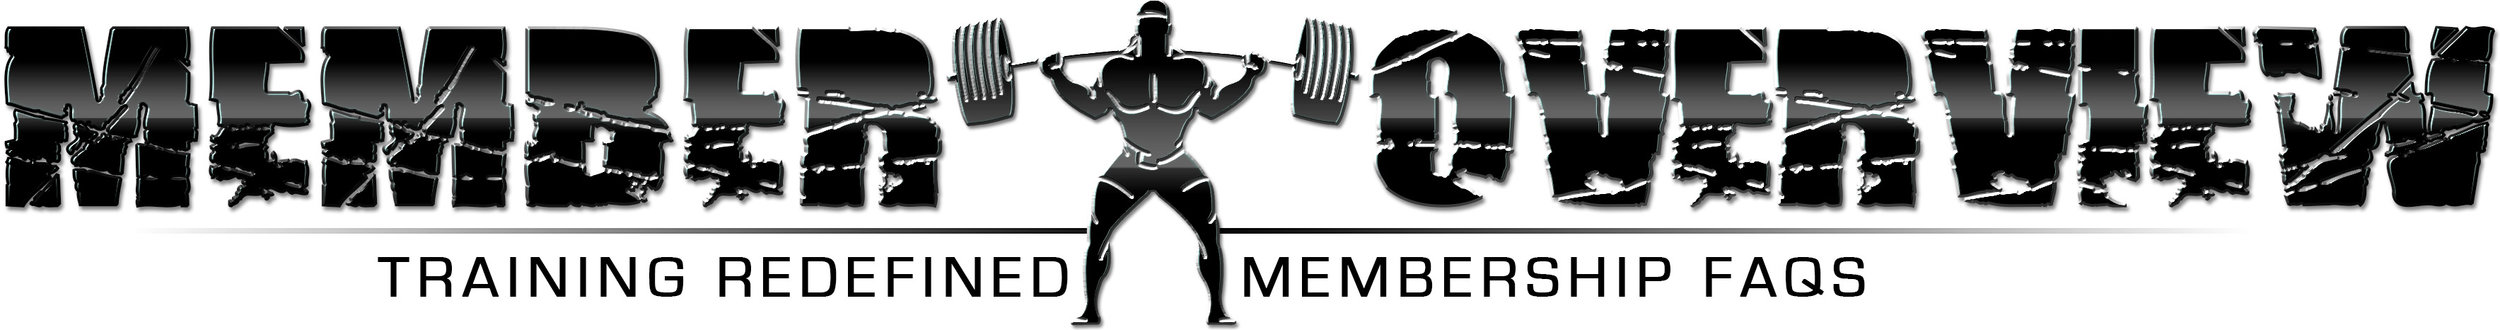 Member Overview - Training Redefined.jpg